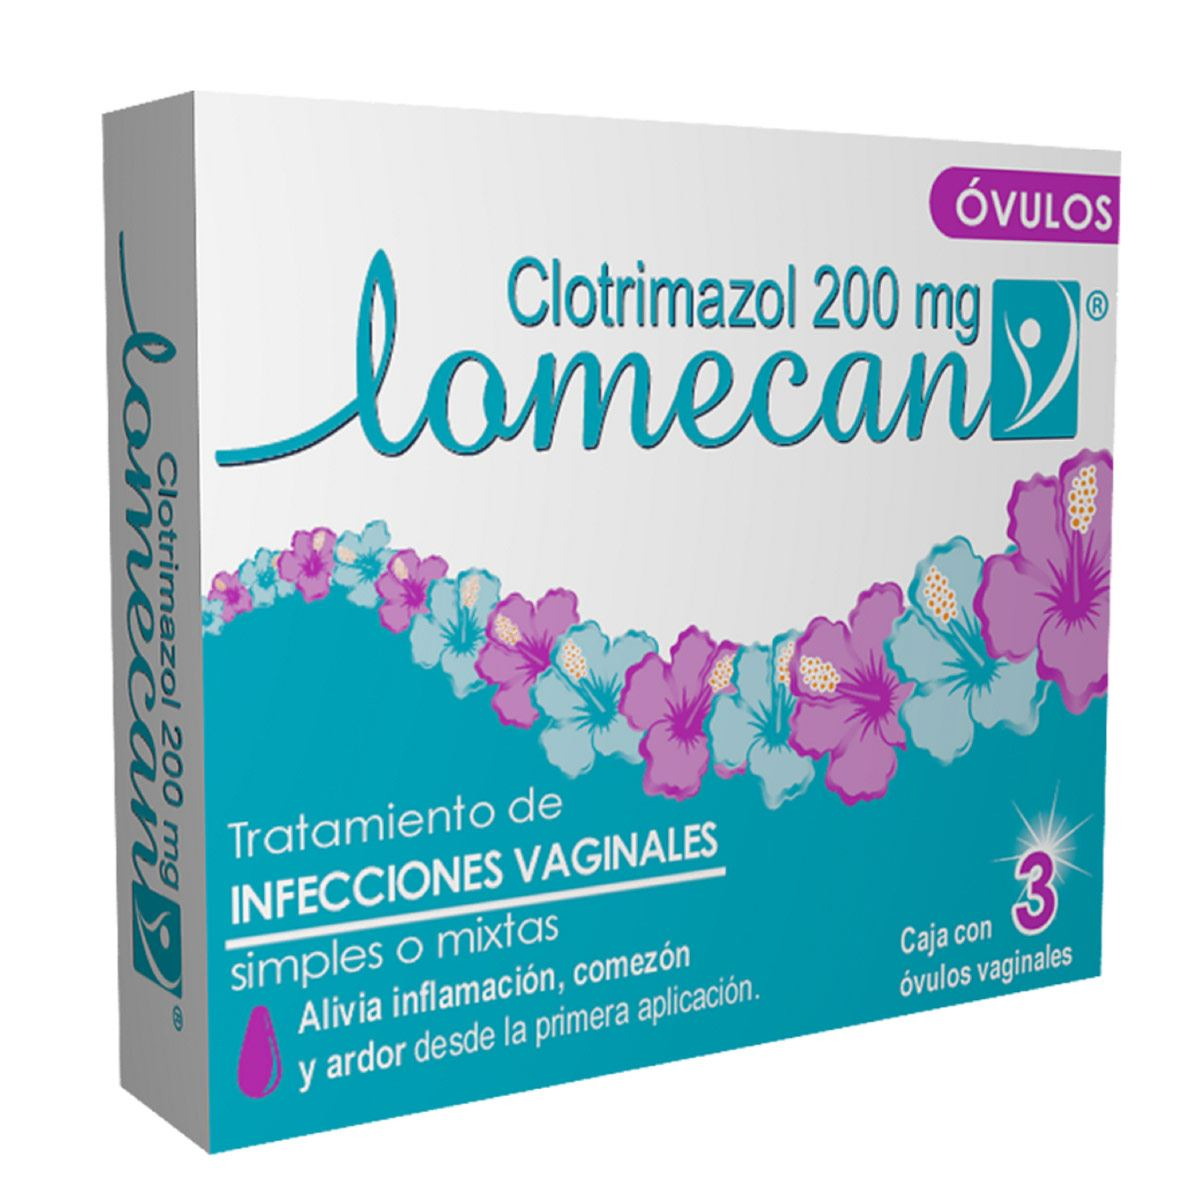 Lomecan Ovulos Img Floral E-10